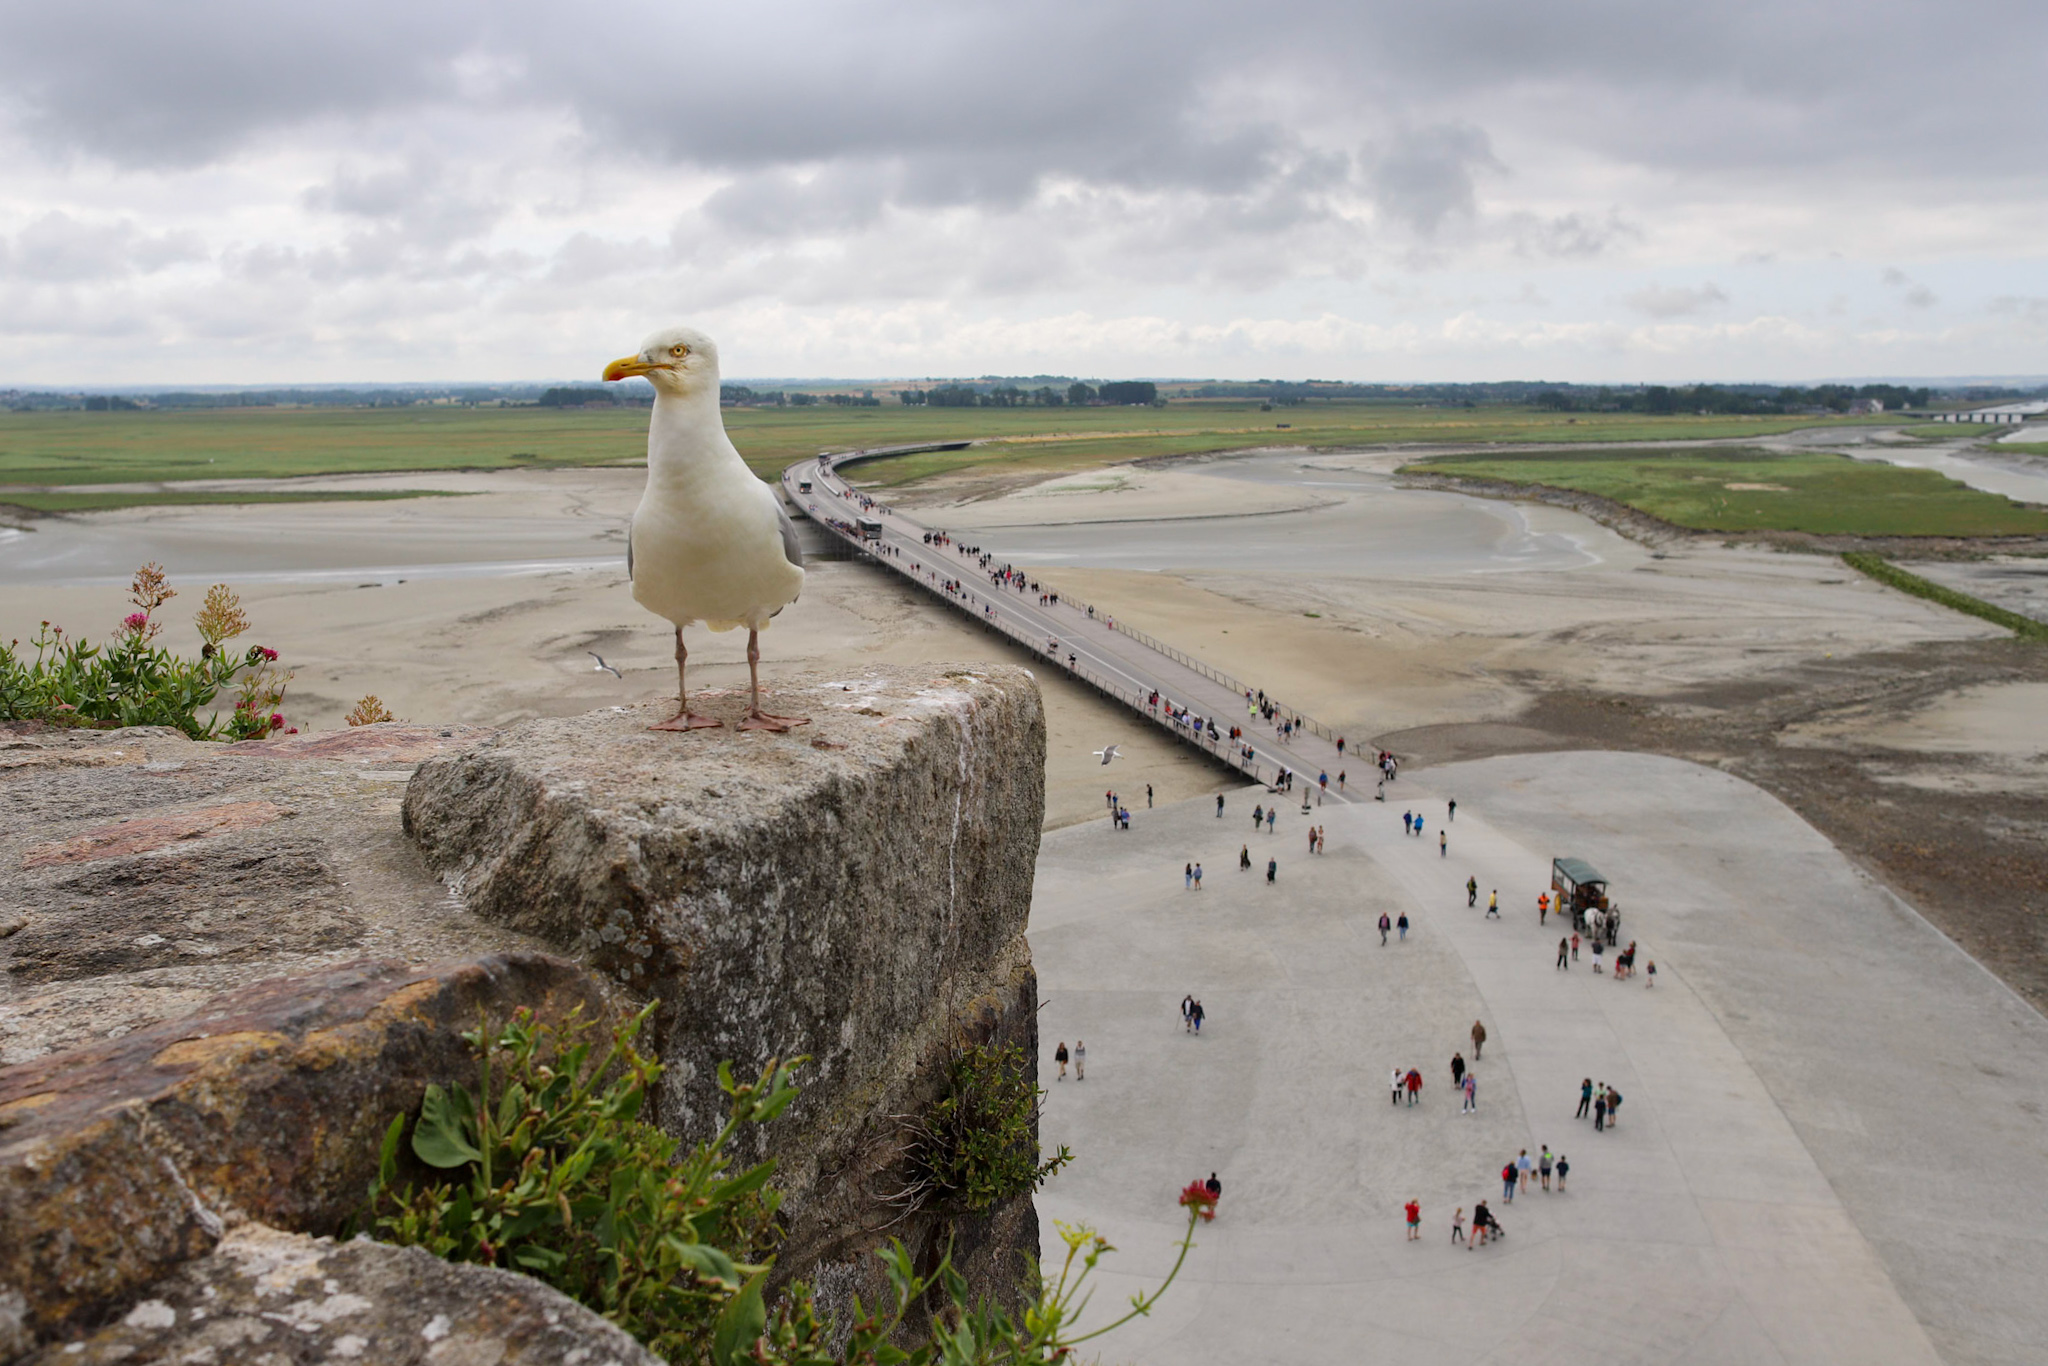 Mont Saint Michel, France – The most visited travel destination in the world